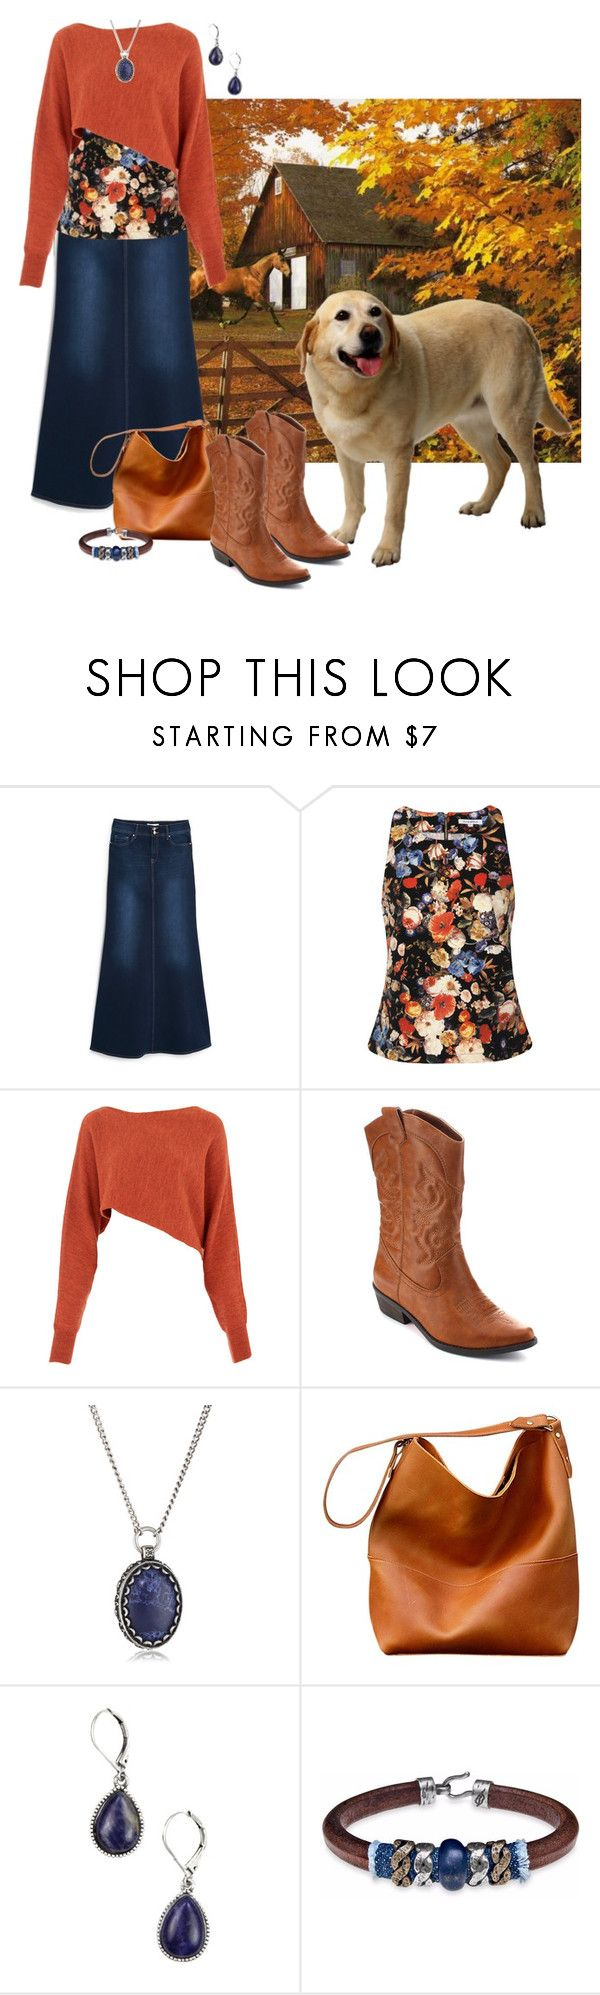 """""""Country Fall"""" by alara-cary ❤ liked on Polyvore featuring MANGO, Glamorous, Crea Concept, Vintage America, Platadepalo and country"""